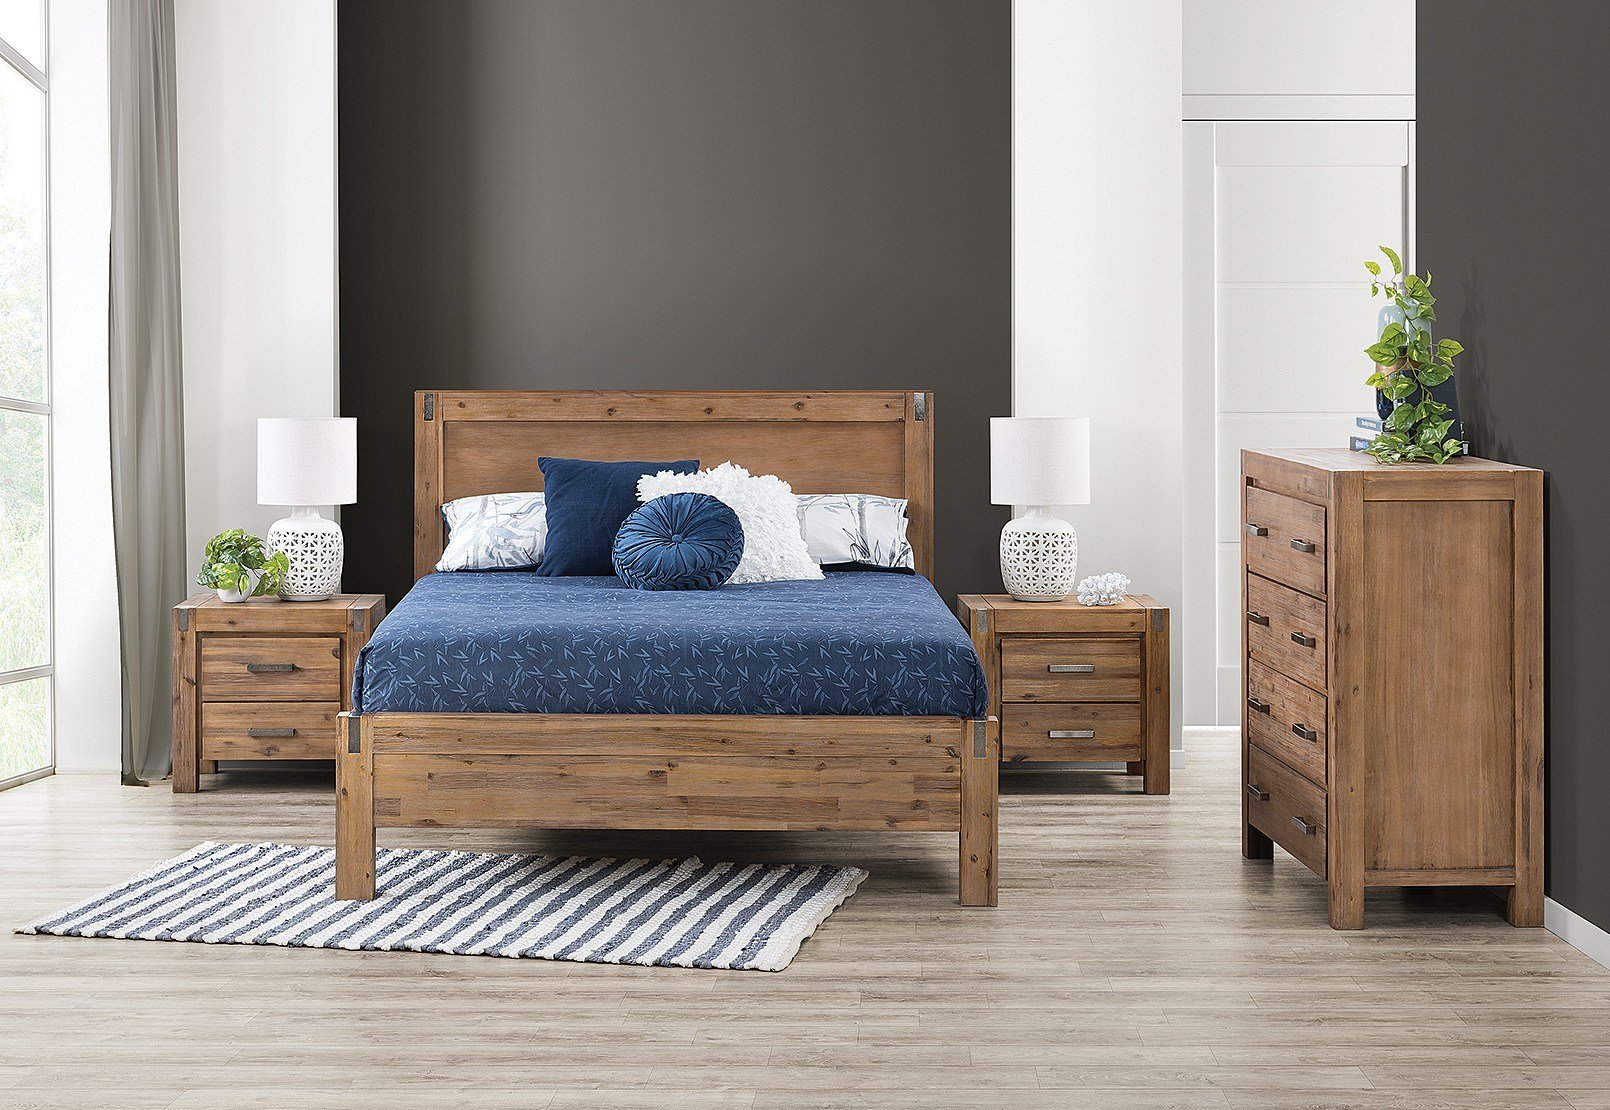 Best Silverwood 4 Piece Queen Tall Chest Bedroom Suite Amart With Pictures